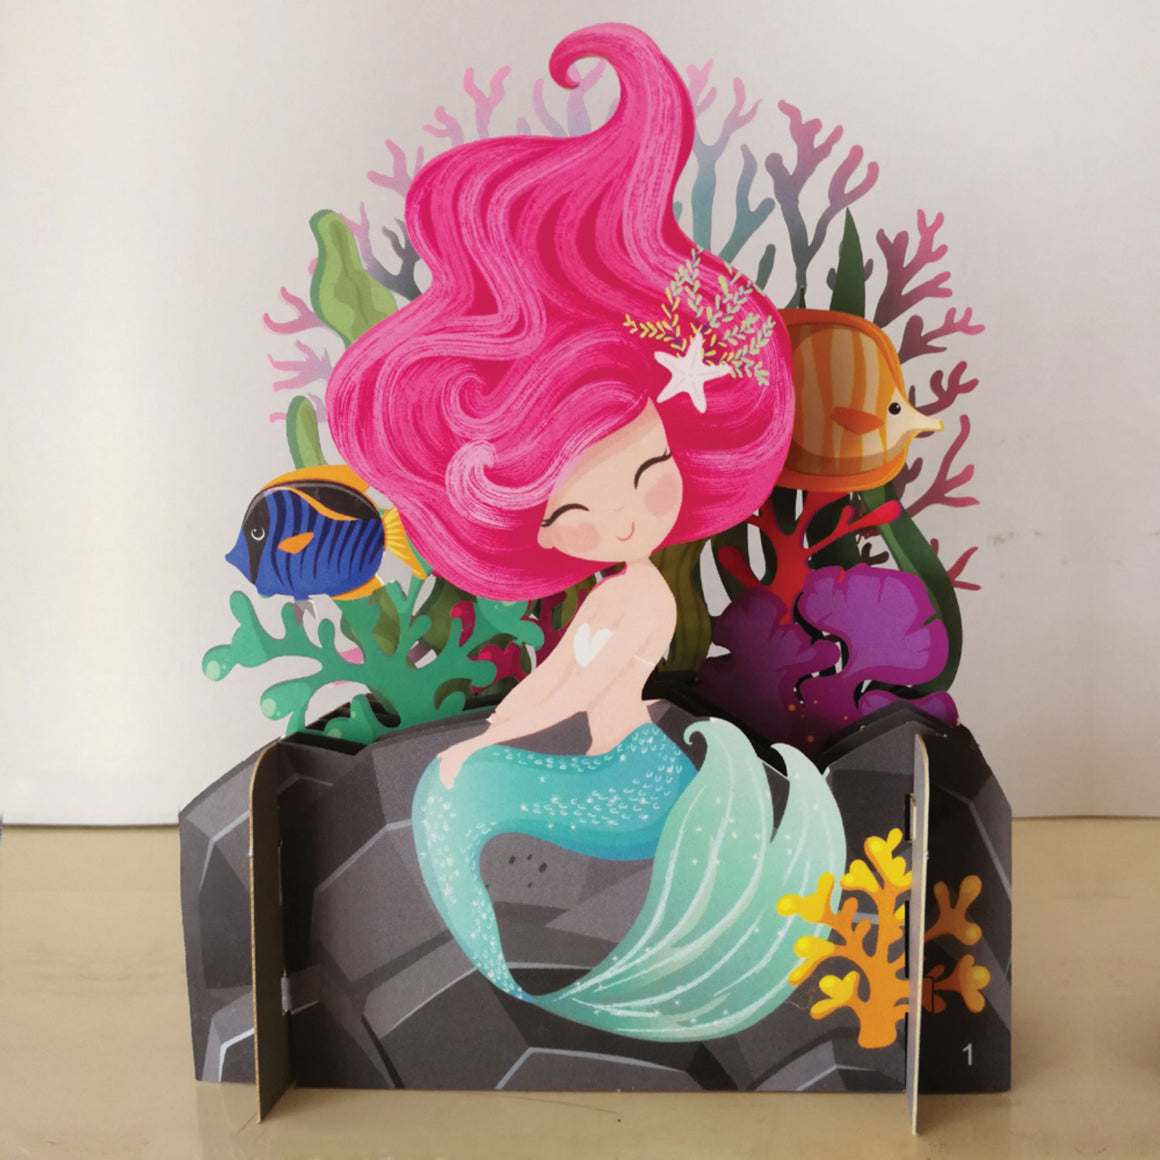 Mermaid 3D Pop Up Card